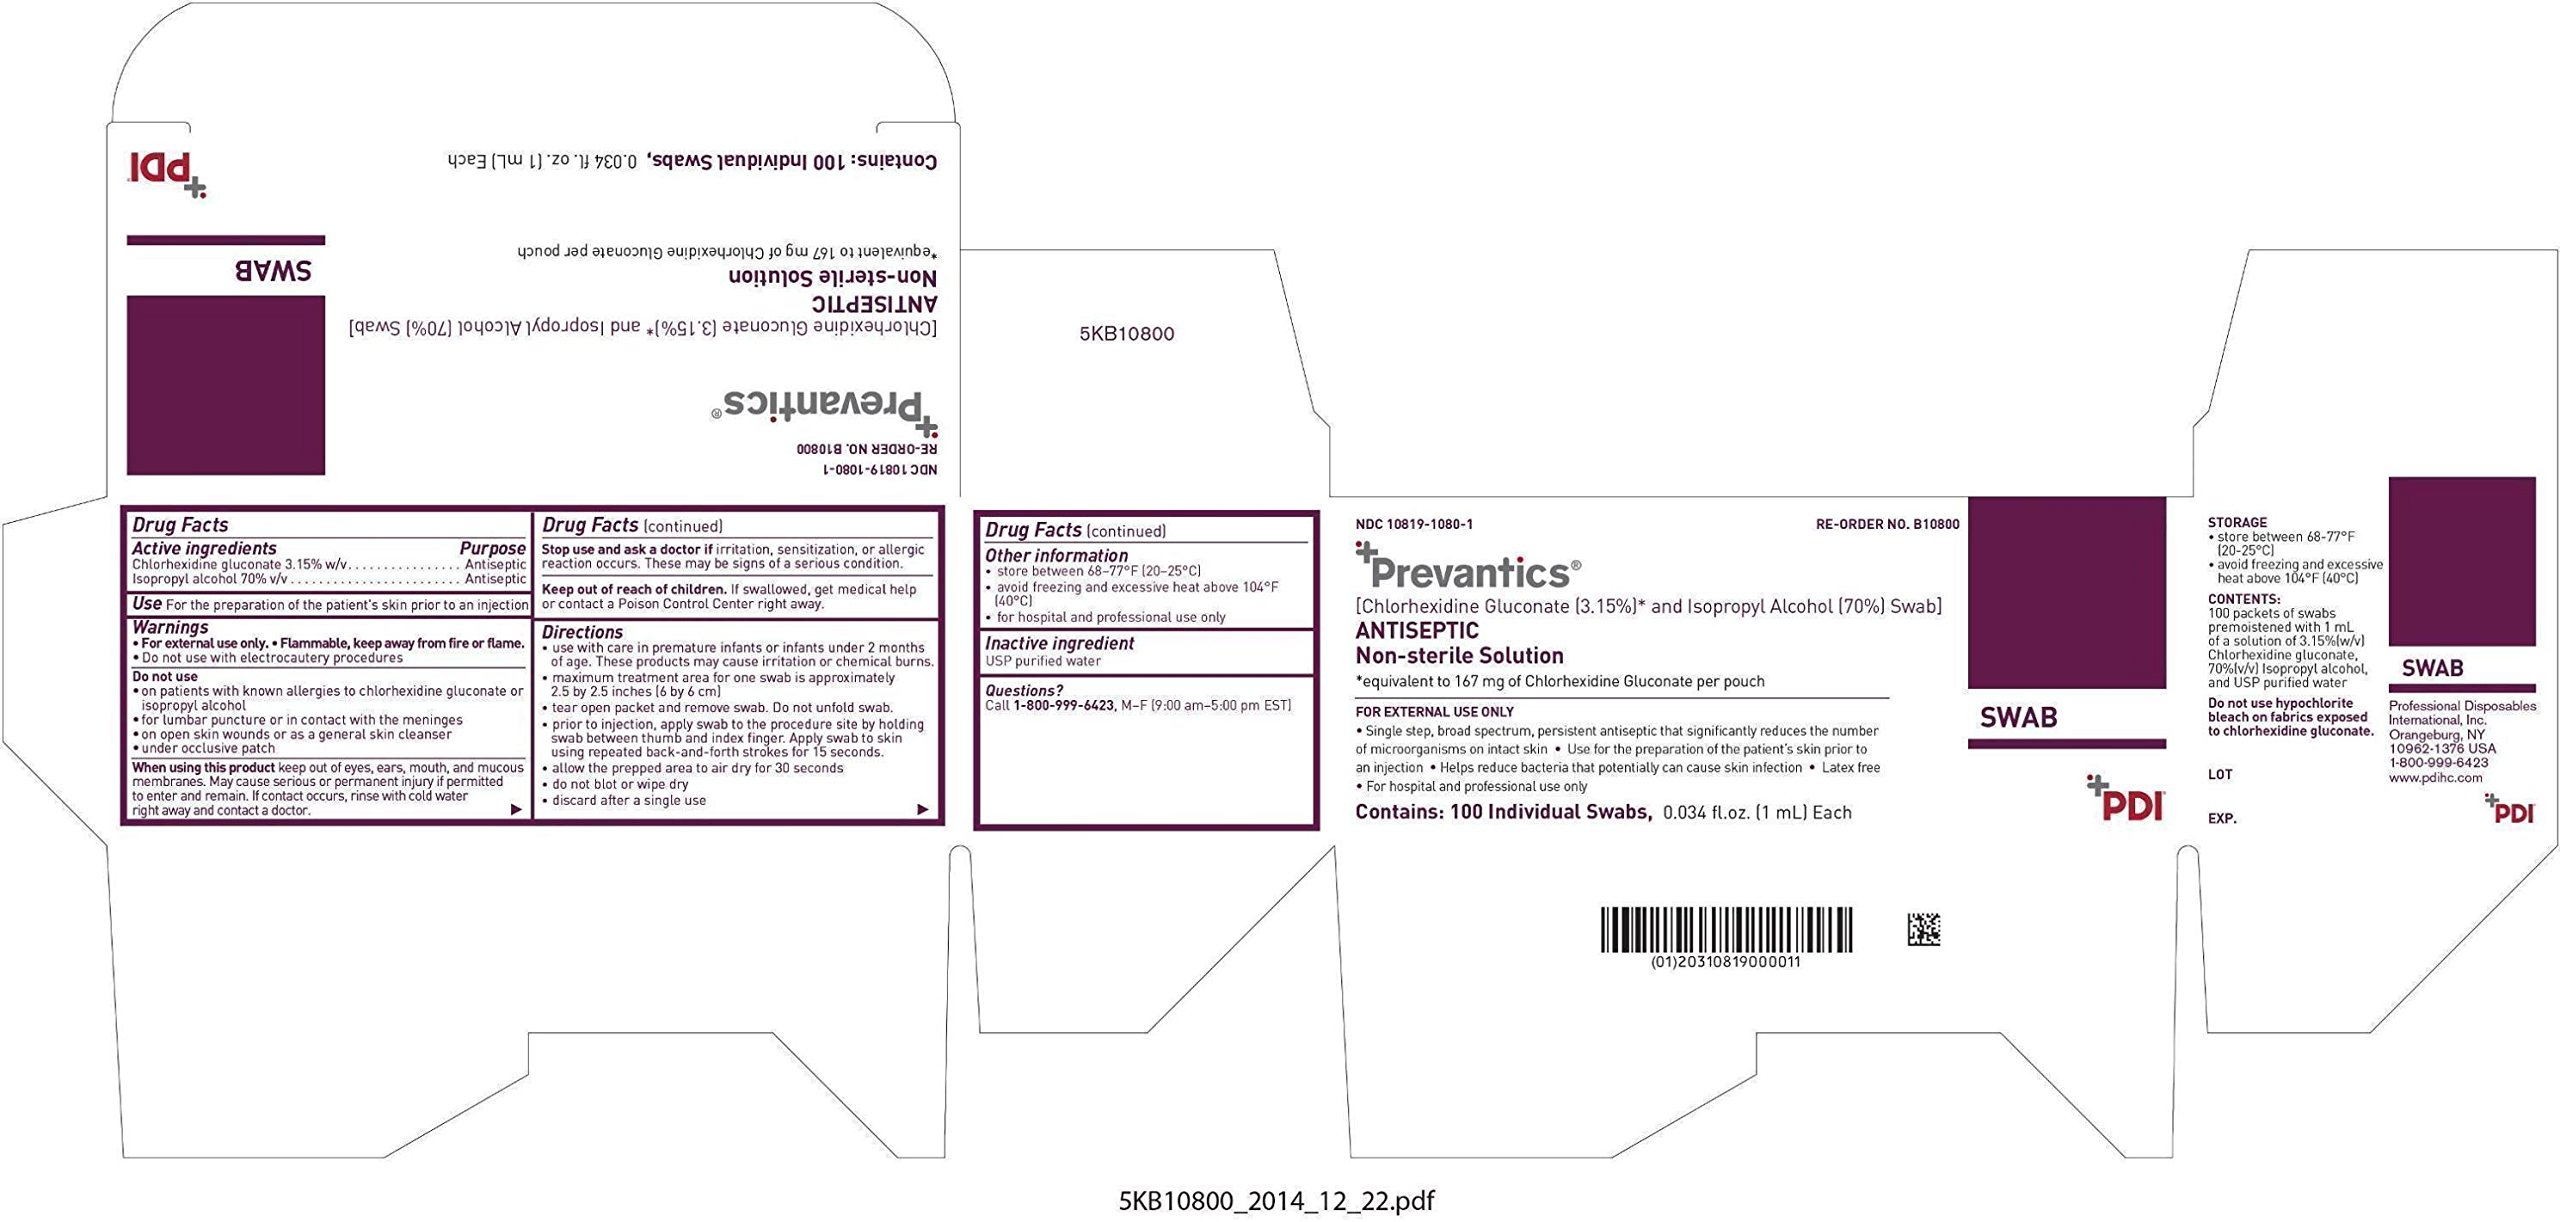 Prevantics Alcohol Prep Pads/Swabs (FKA Chlorascrub) Model: NPKB10800- Case of 1000 (10 Boxes of 100)